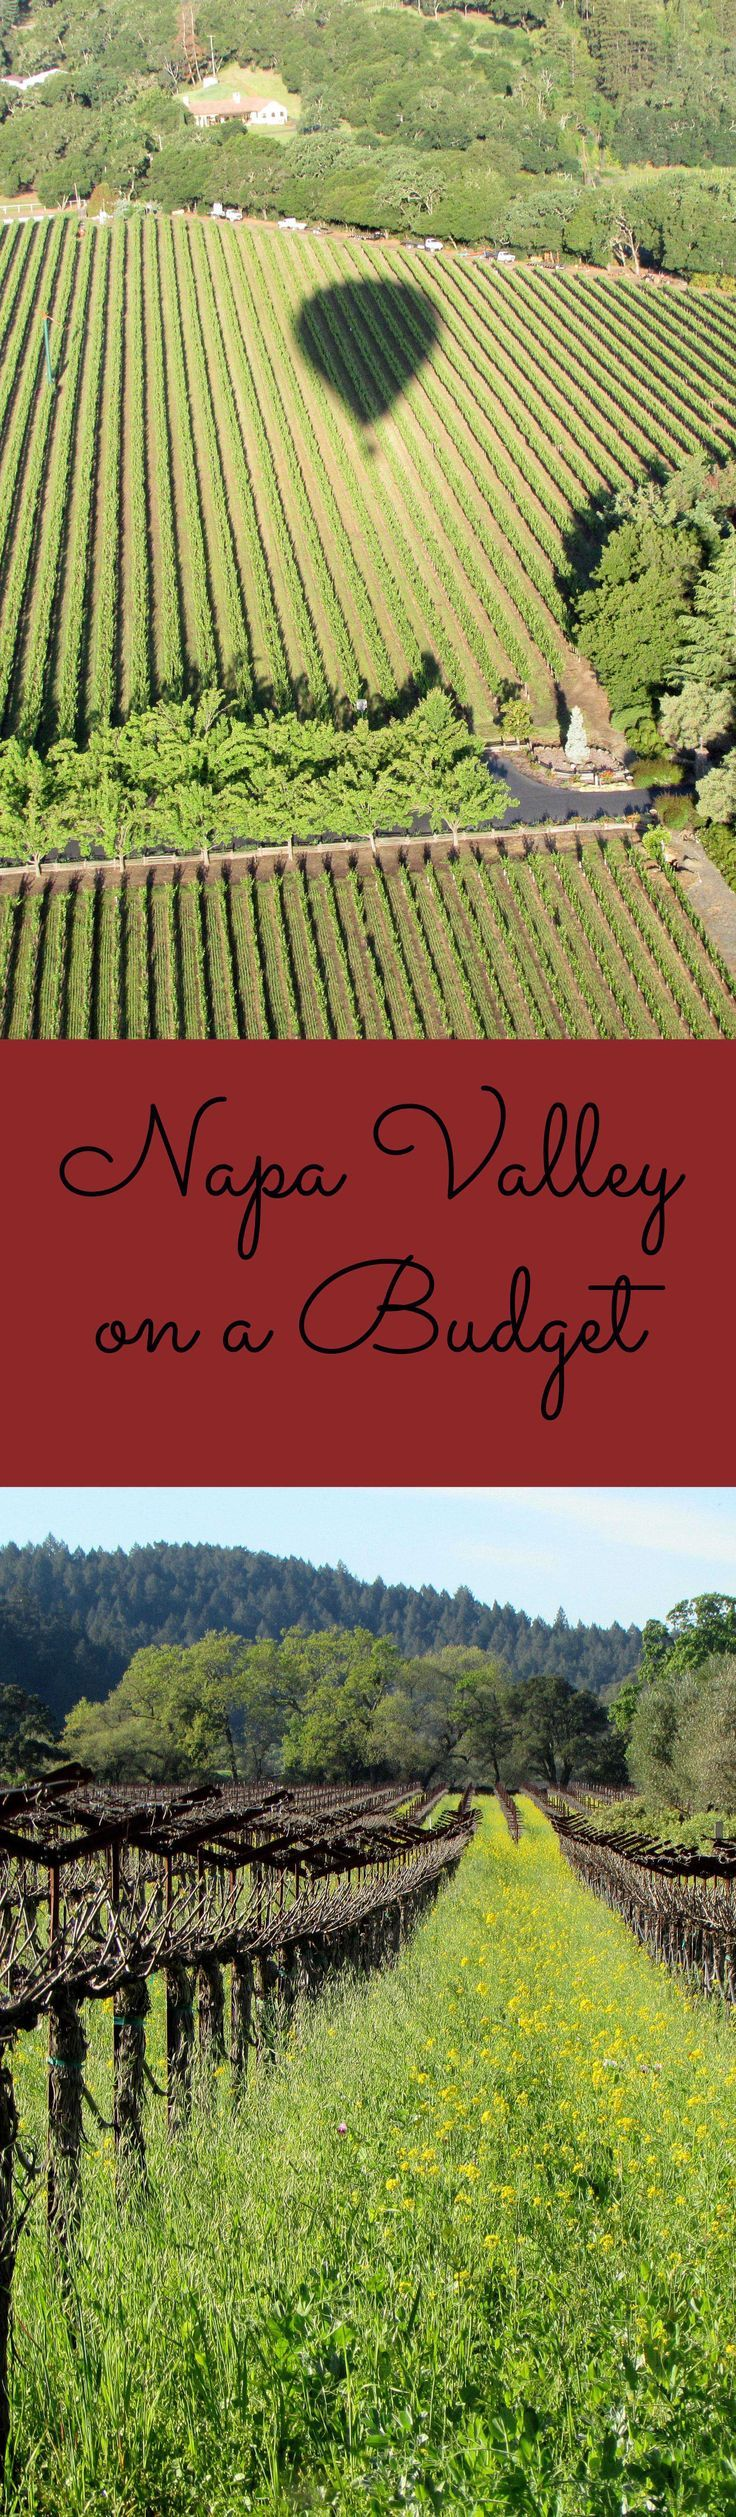 Tips For Wine Tasting In Napa On A Budget Napa Winetasting Budgettips Napa Trip Napa Valley Trip Usa Travel Destinations